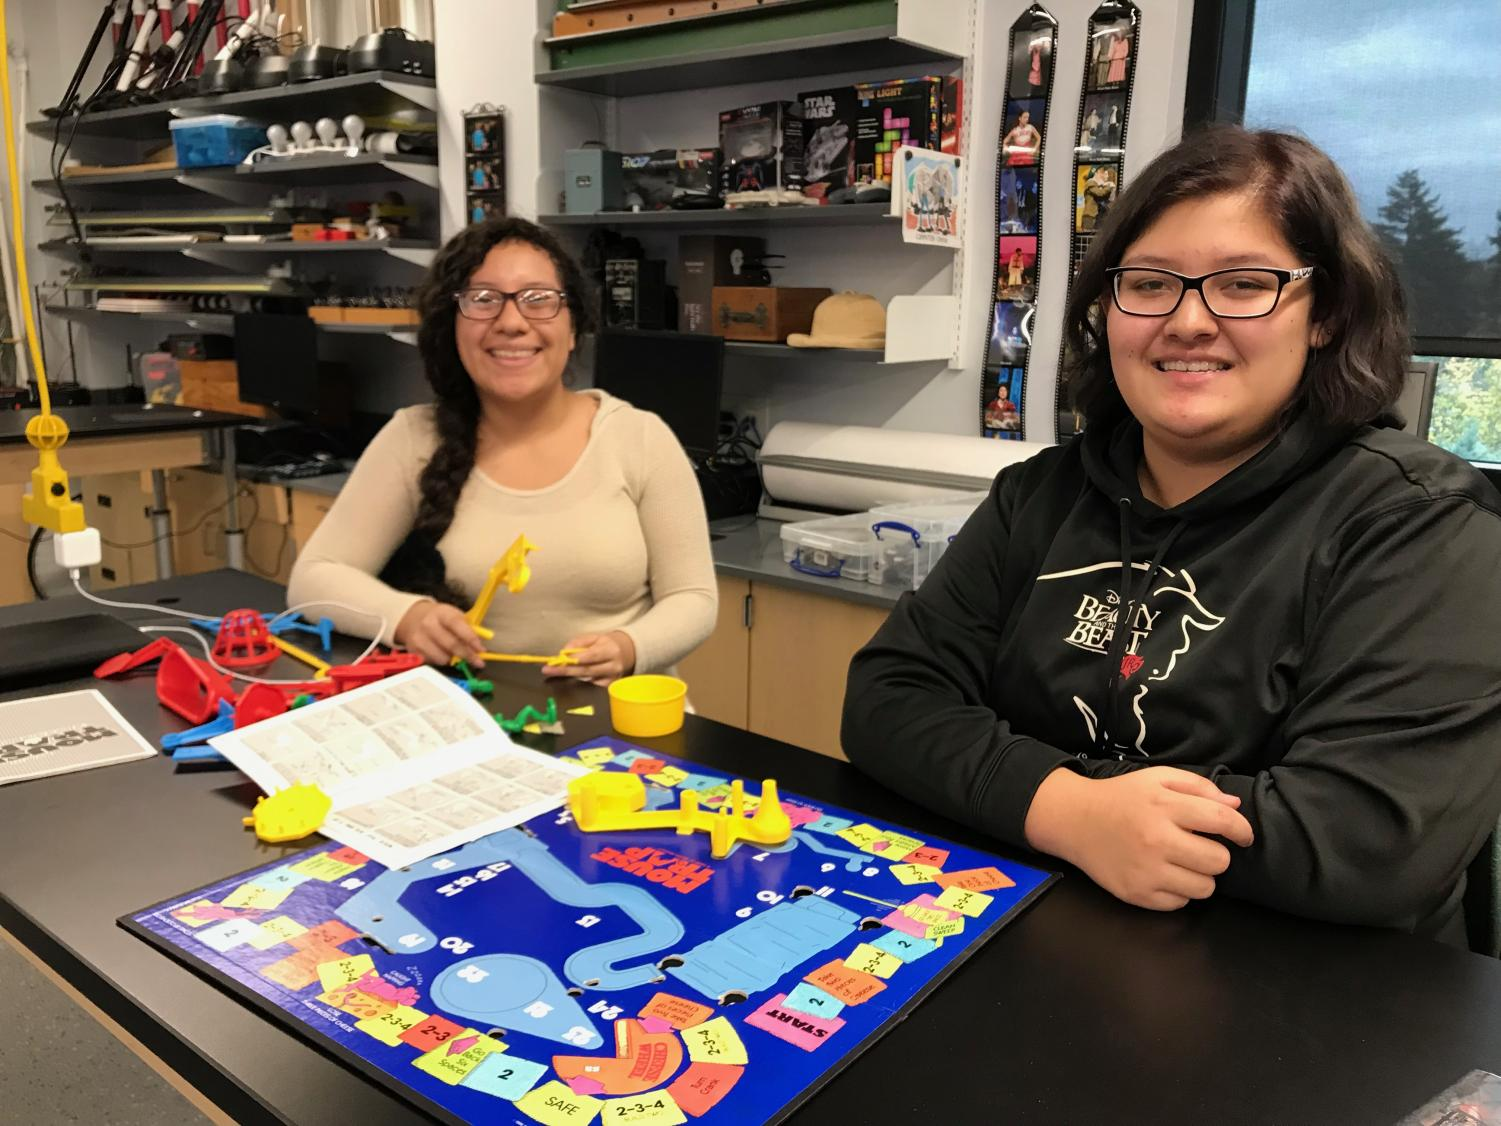 Alexandra Perez and Eowyn Keaton assemble their game board.